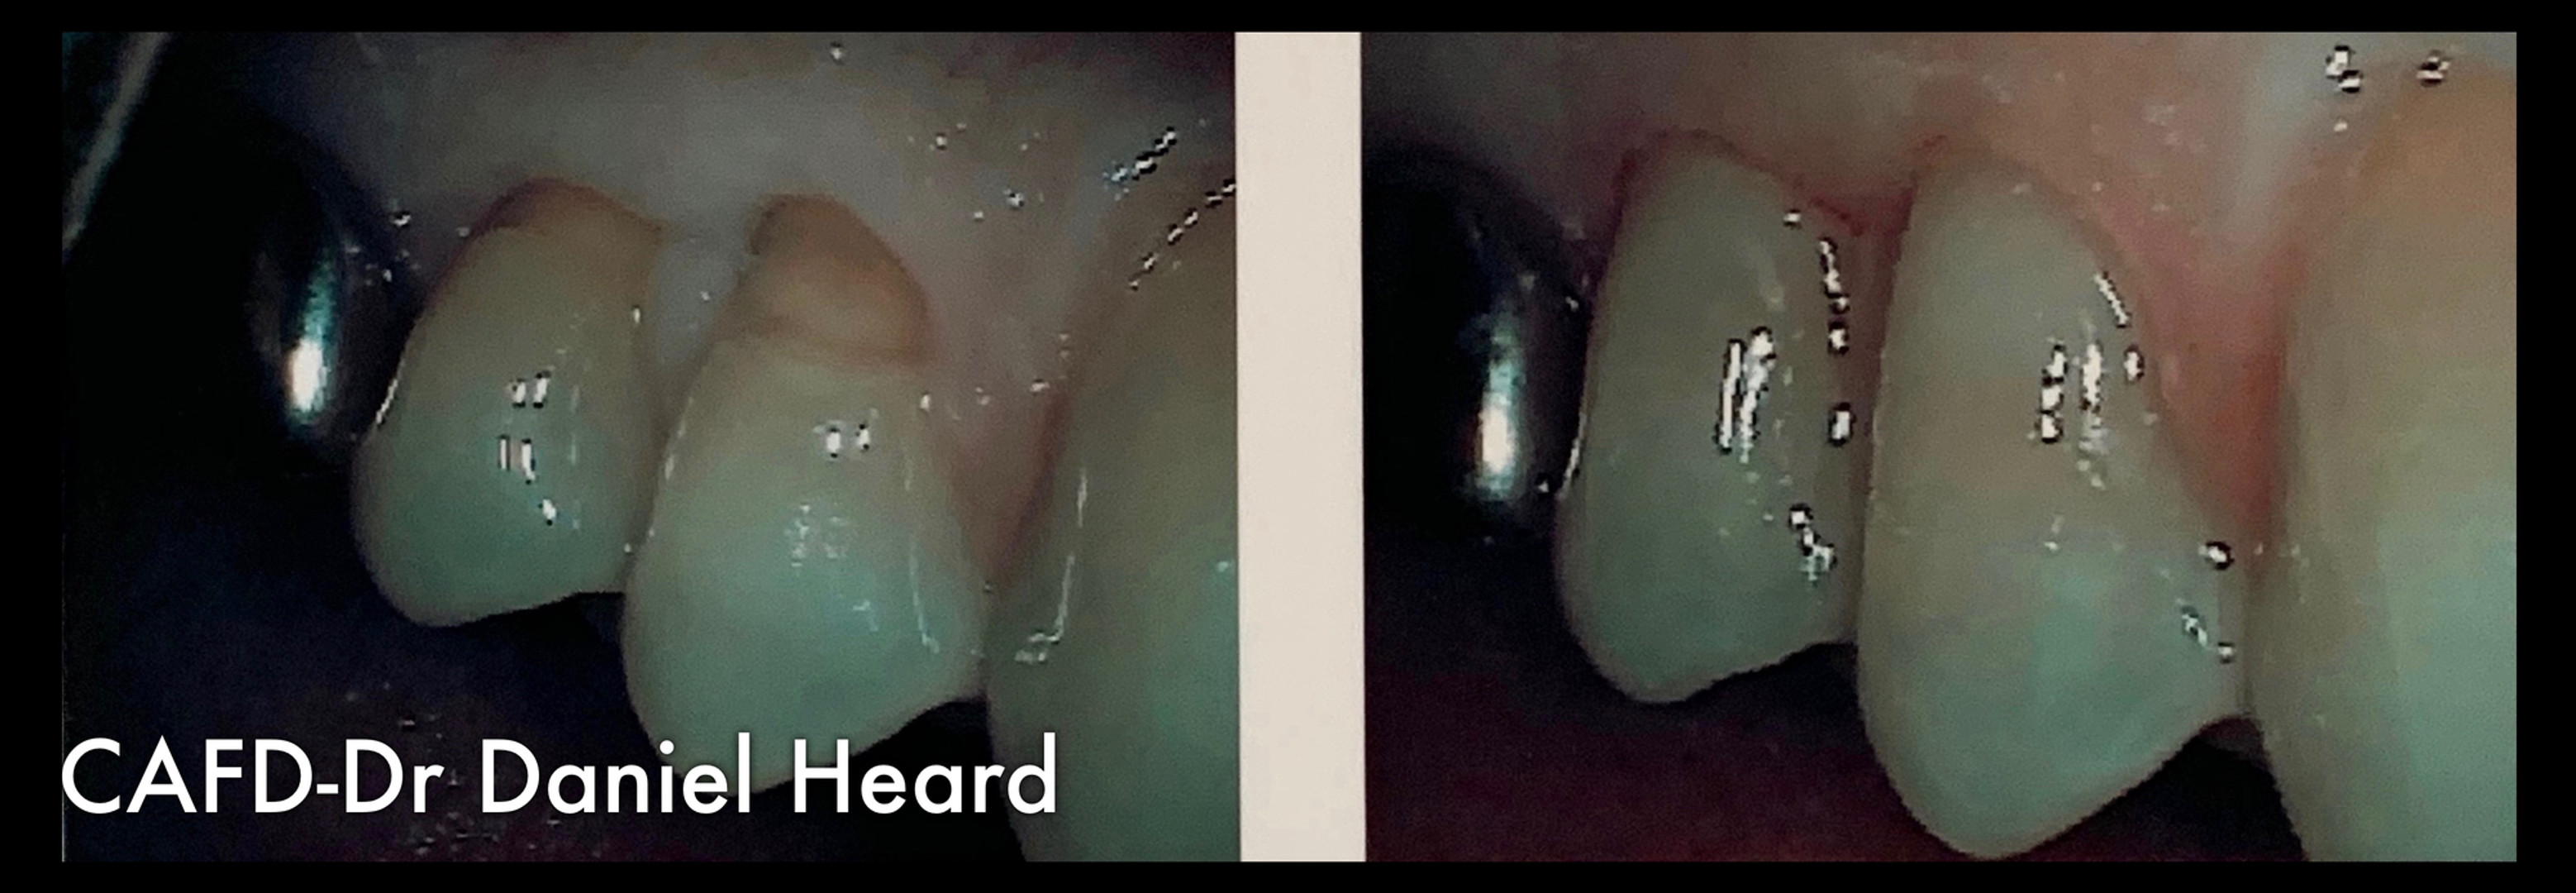 CAFD-Dr Daniel Heard-Abfraction Repair